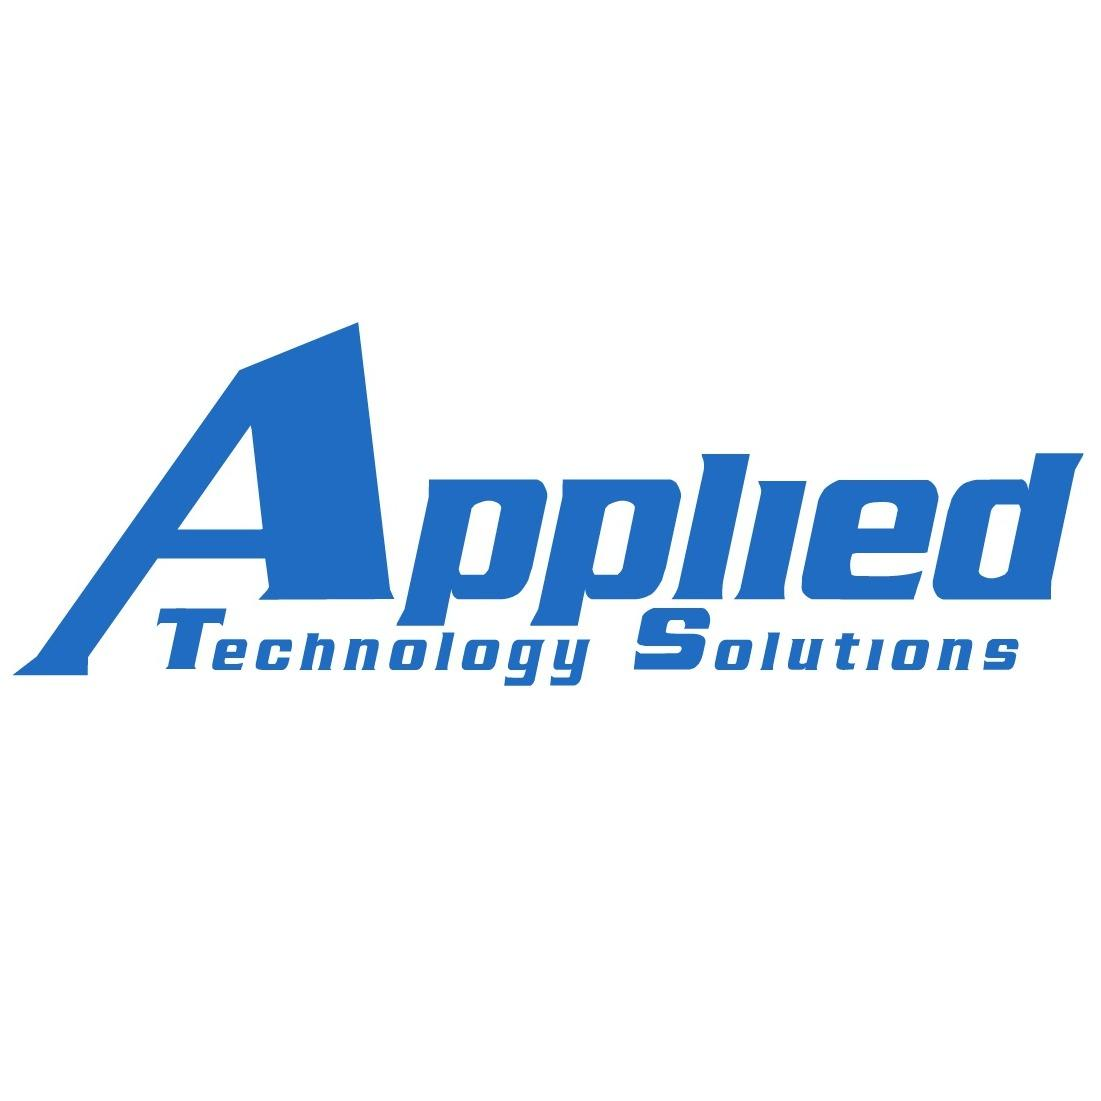 Applie Technology Solutions